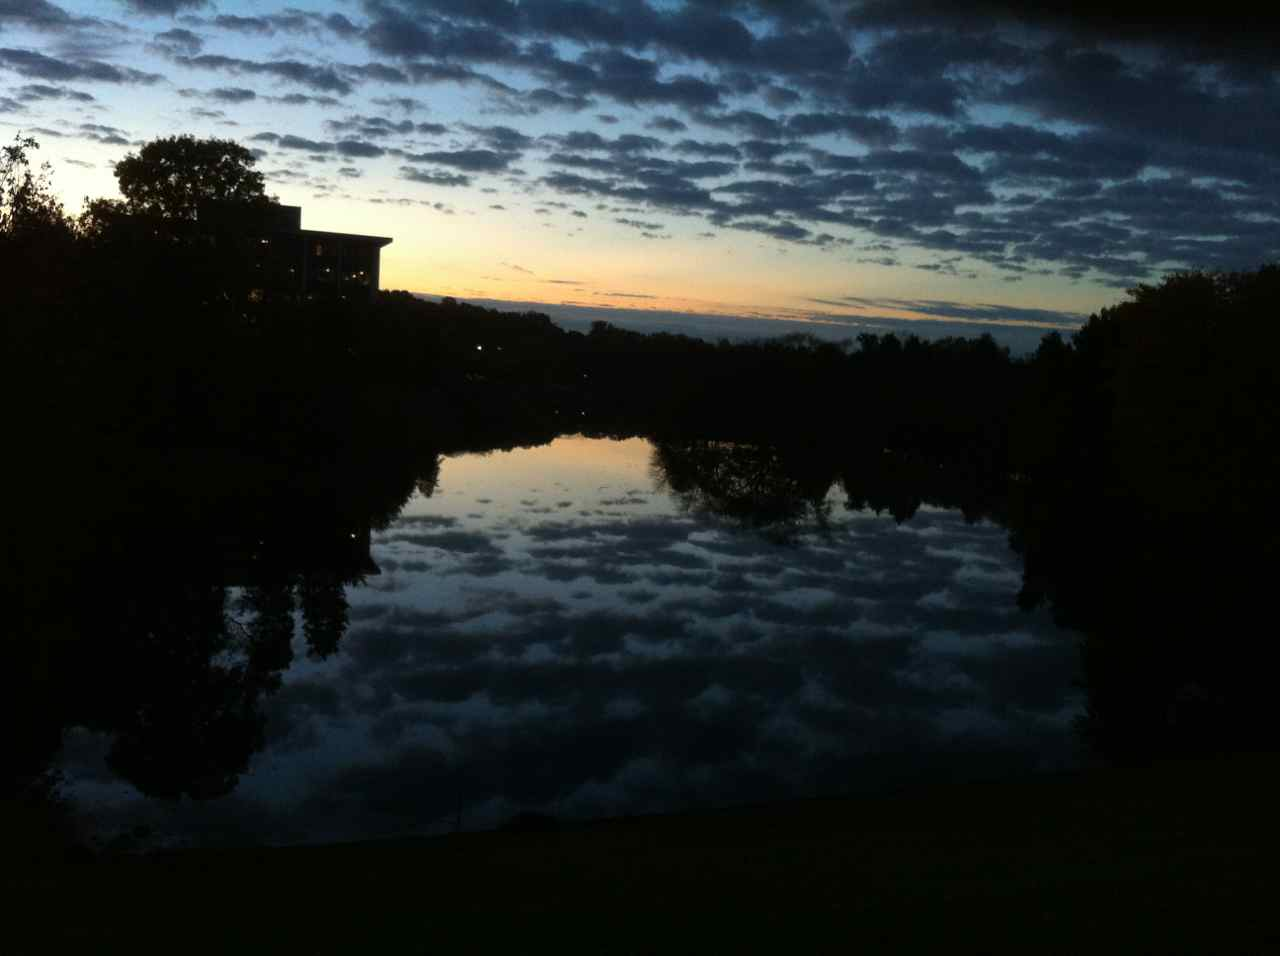 http://zhurnaly.com/images/running/Dawn_Clouds_Lake_Placid_Gaithersburg.jpg